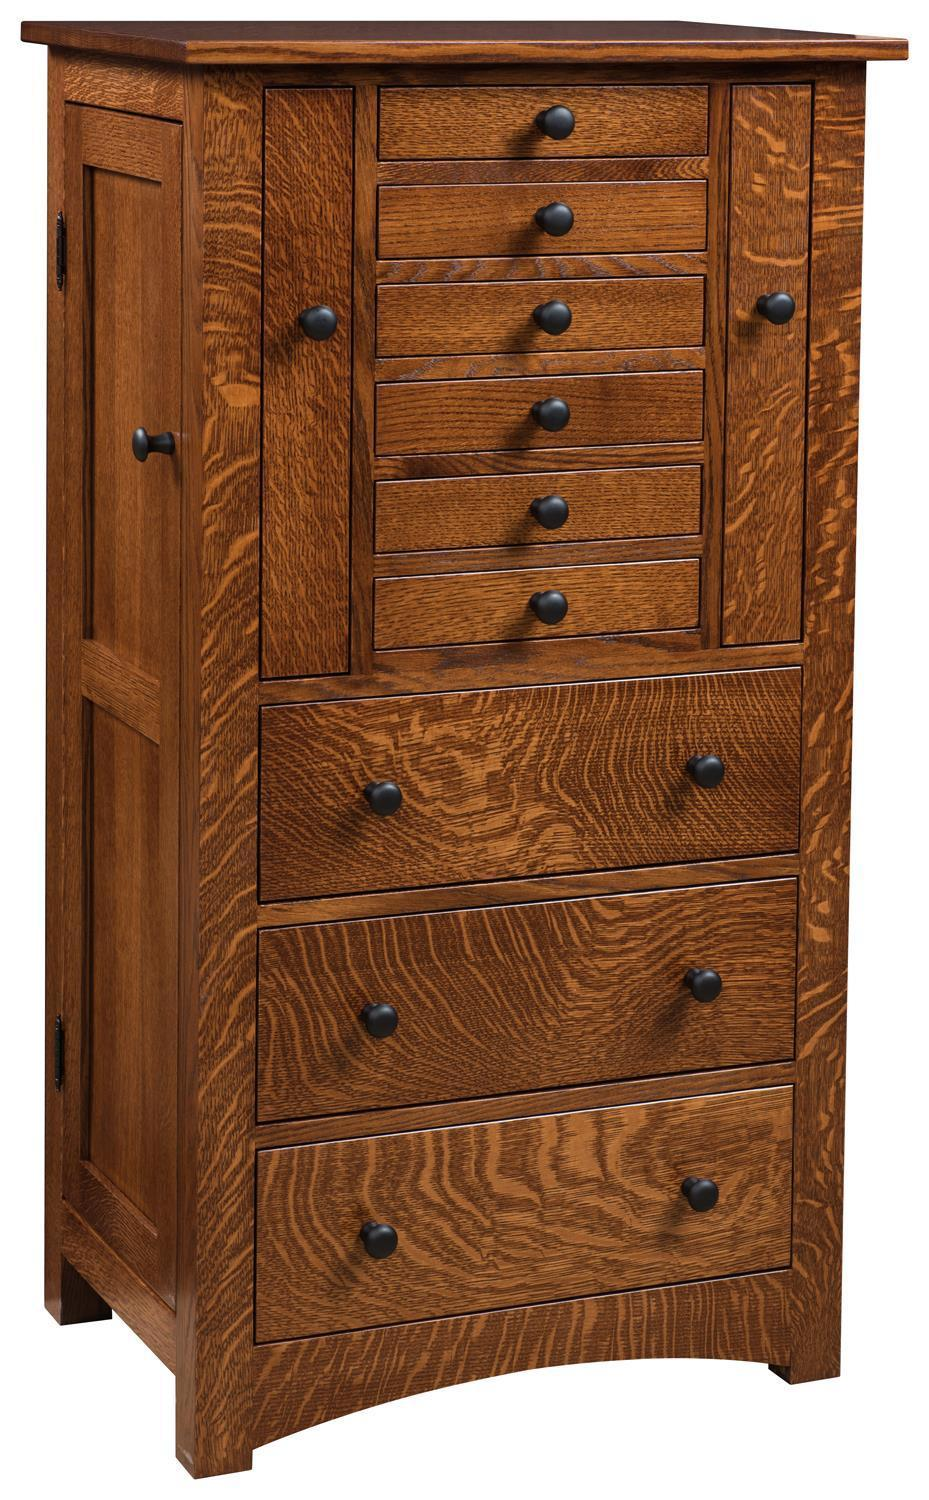 Deluxe Flush Mission Jewelry Armoire with Pull Out Doors from